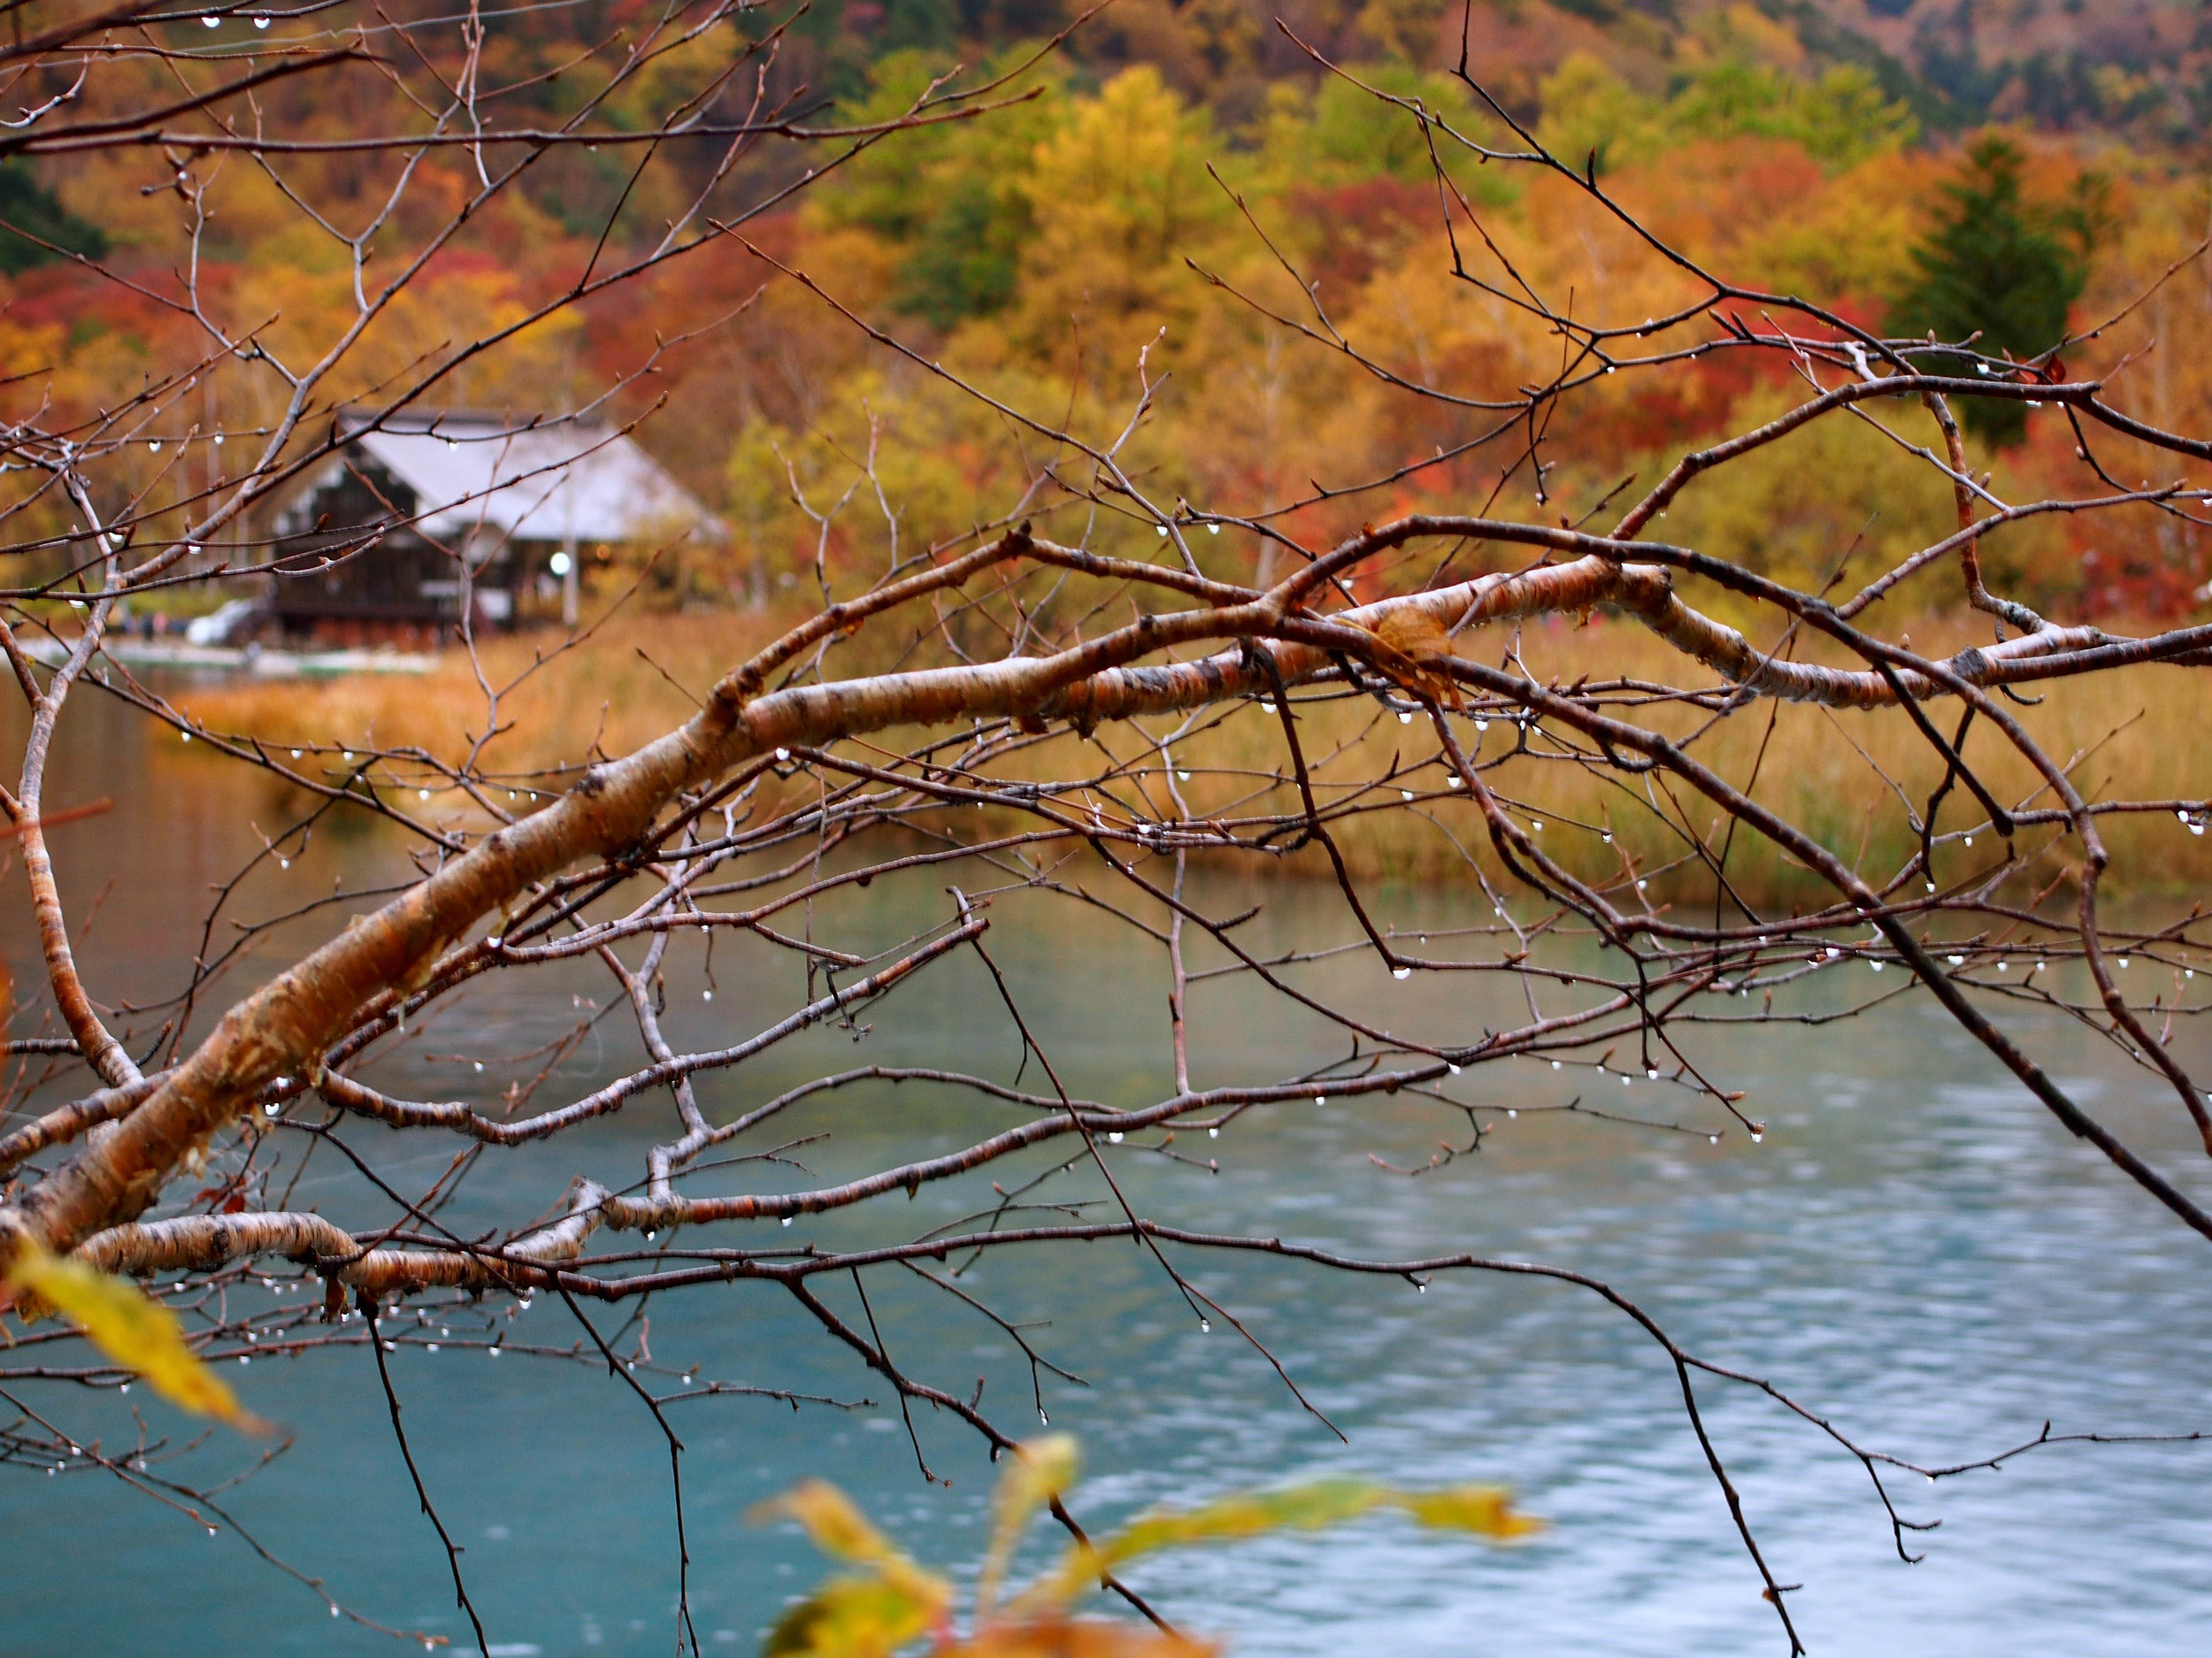 Incorporate Nature INto Your Travels : This was taken in Nikko, Japan during the start of Autumn.